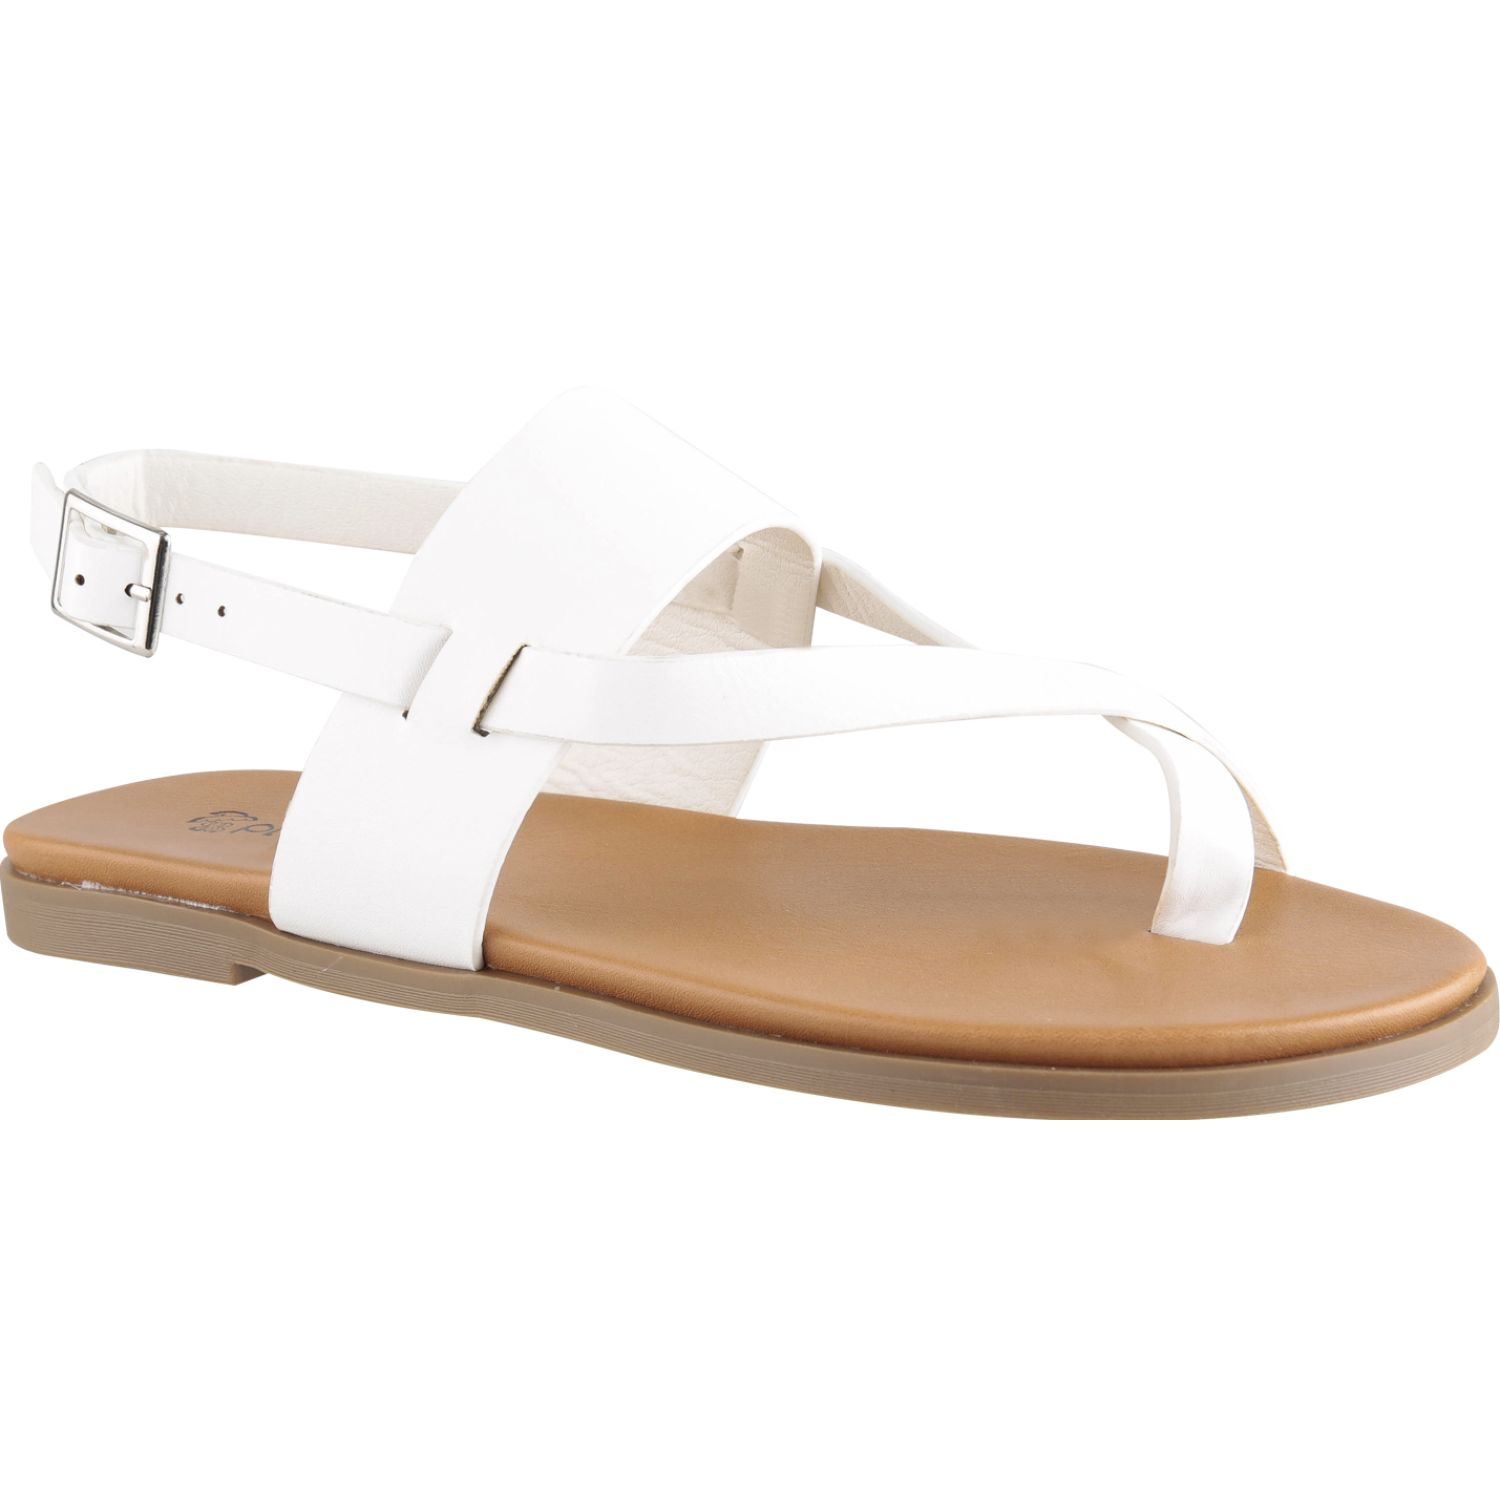 Platanitos sf 8444 Blanco Flats